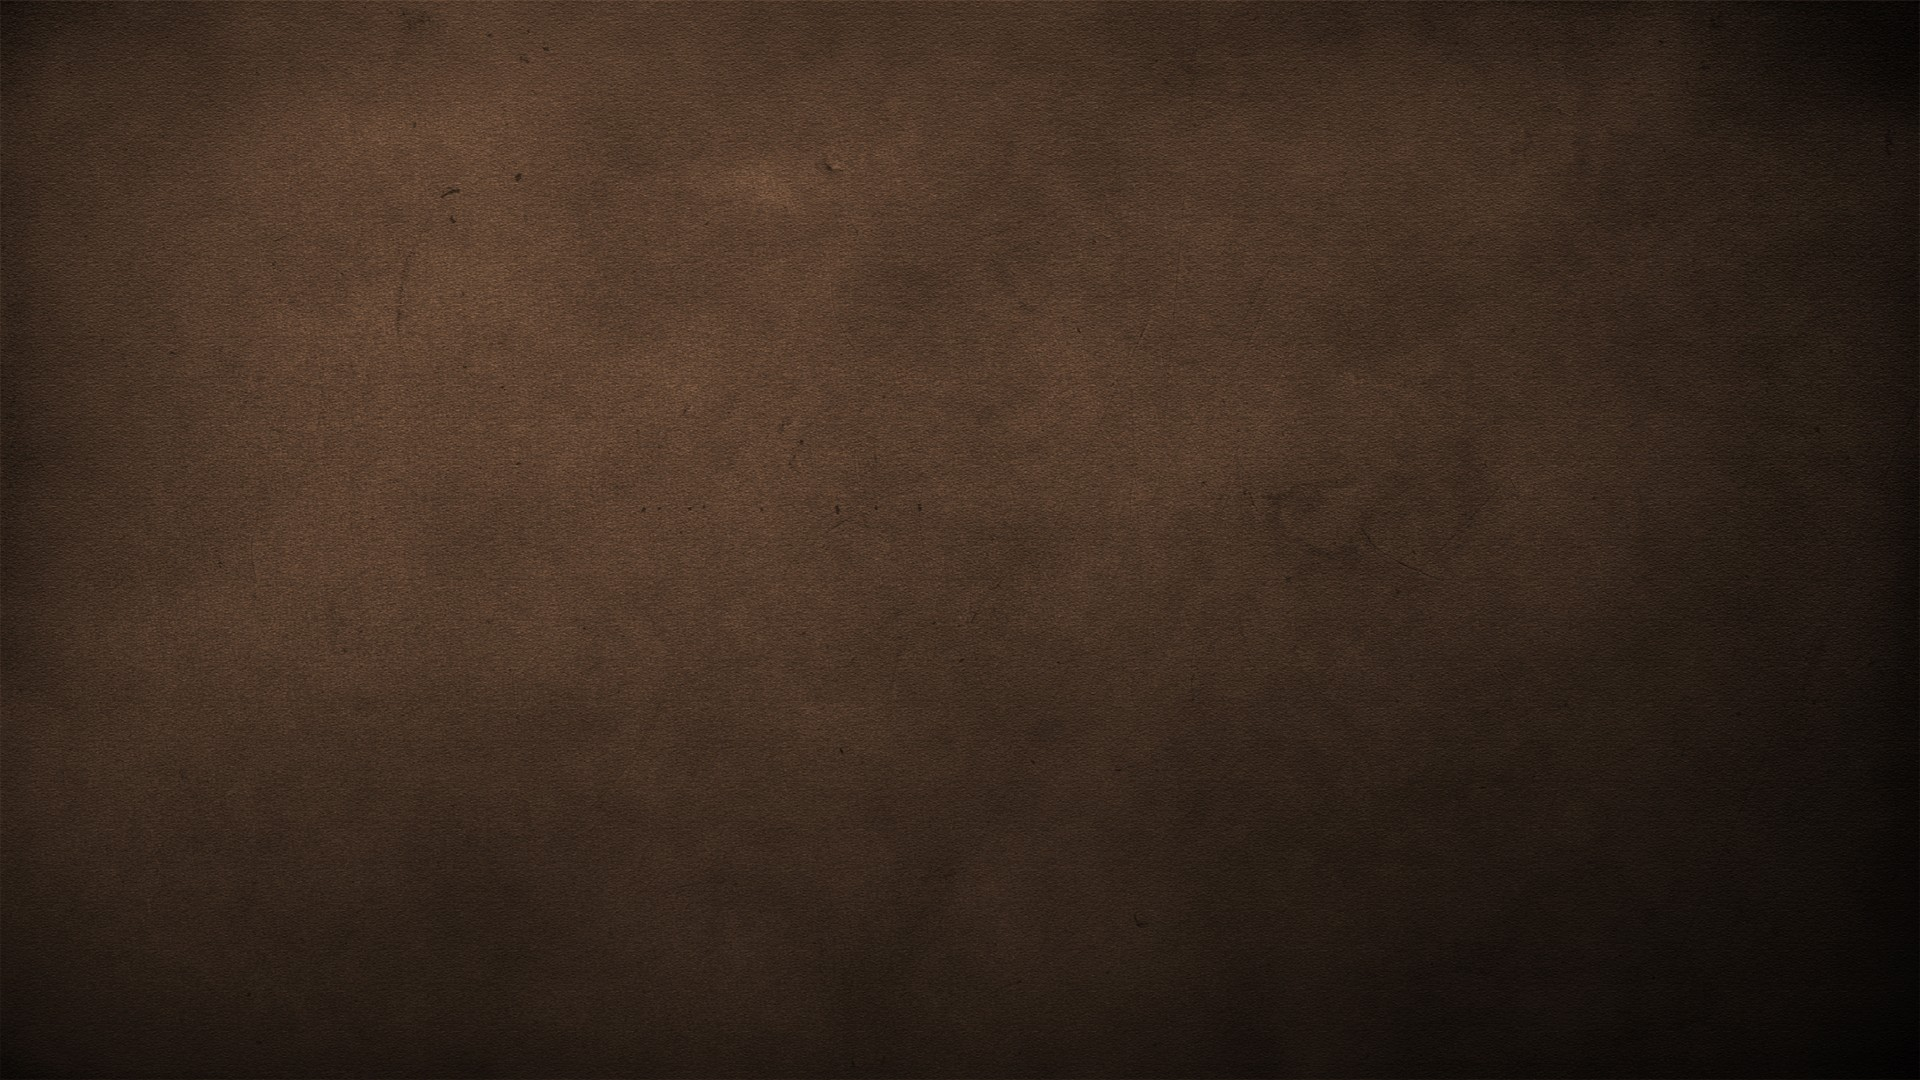 Awesome Brown Background 18647